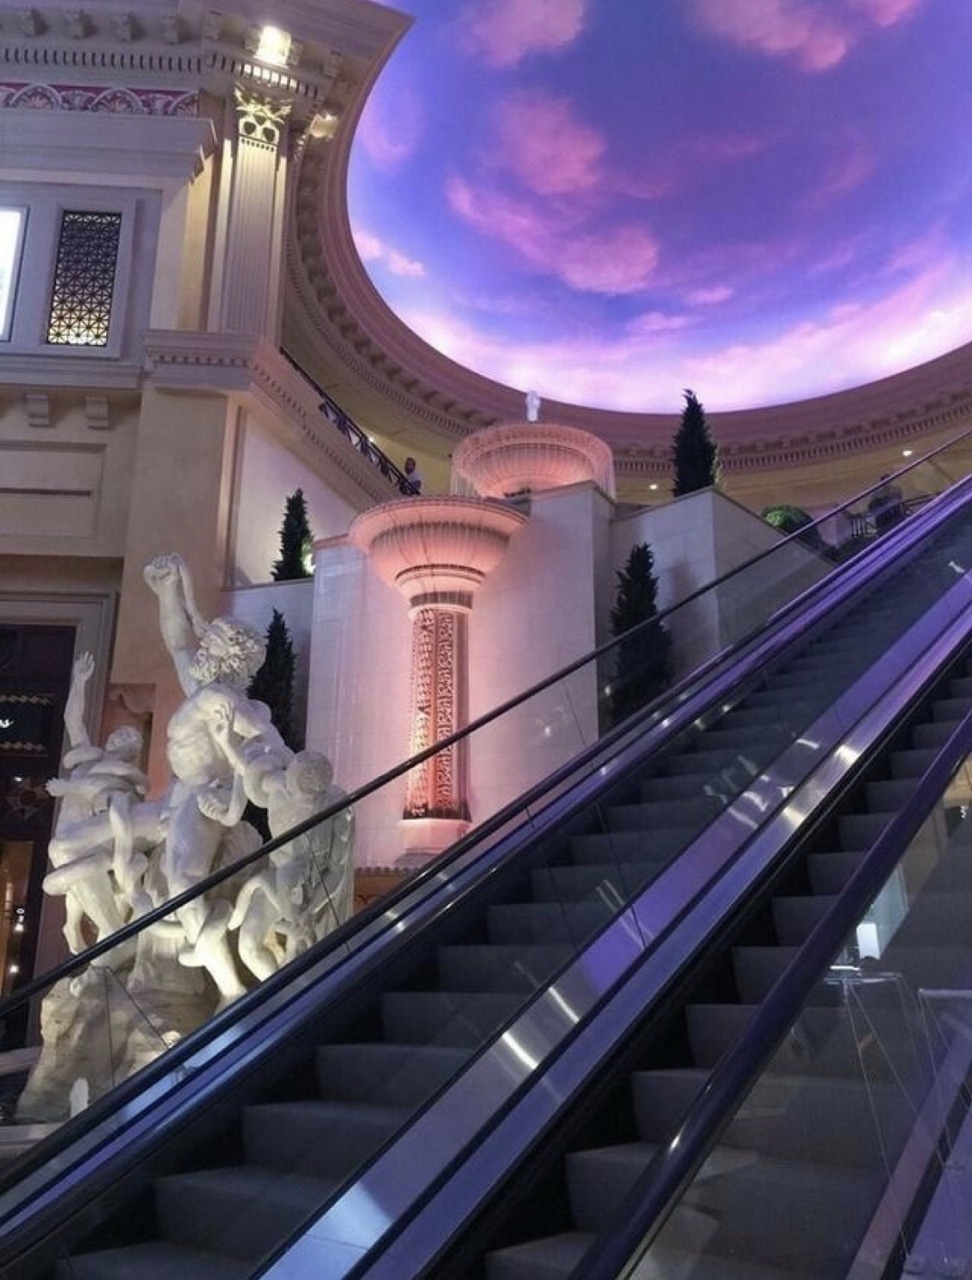 vaporwave, escalator, architecture and statue